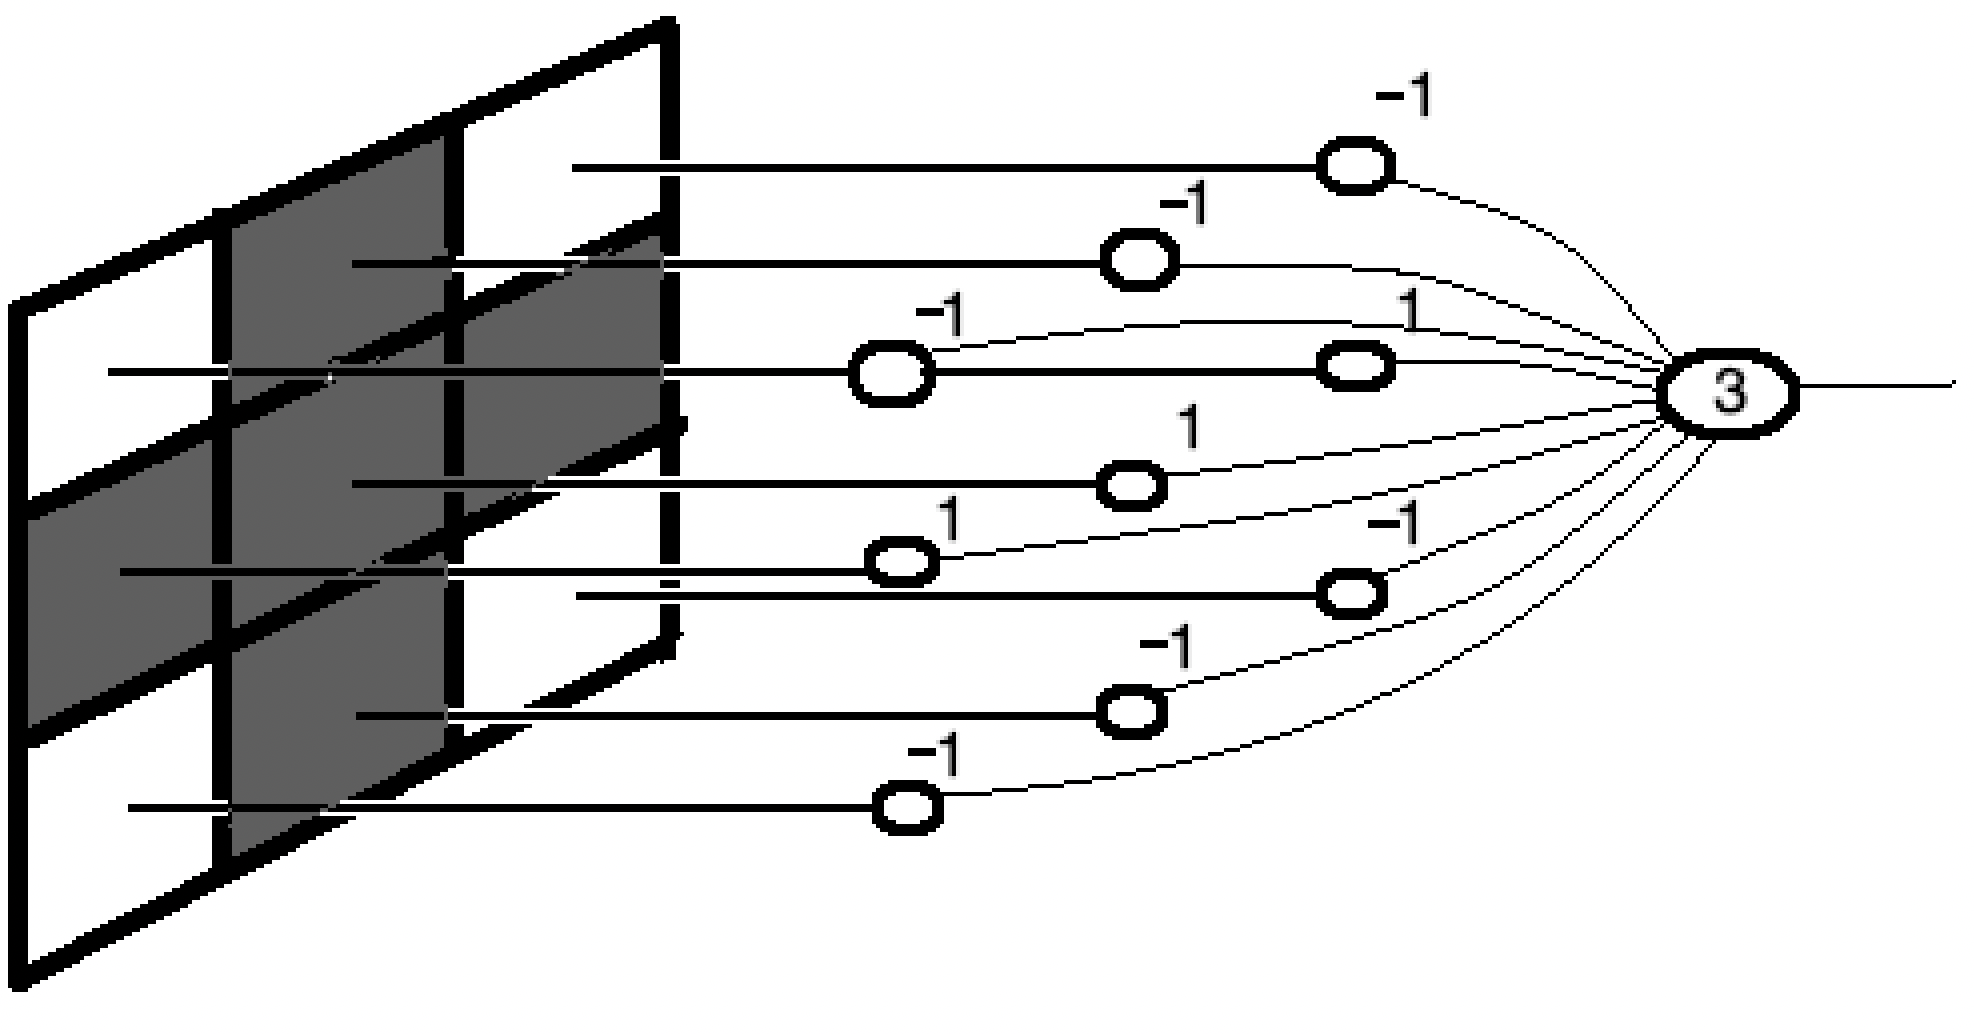 cross image on receptive field, correct weights